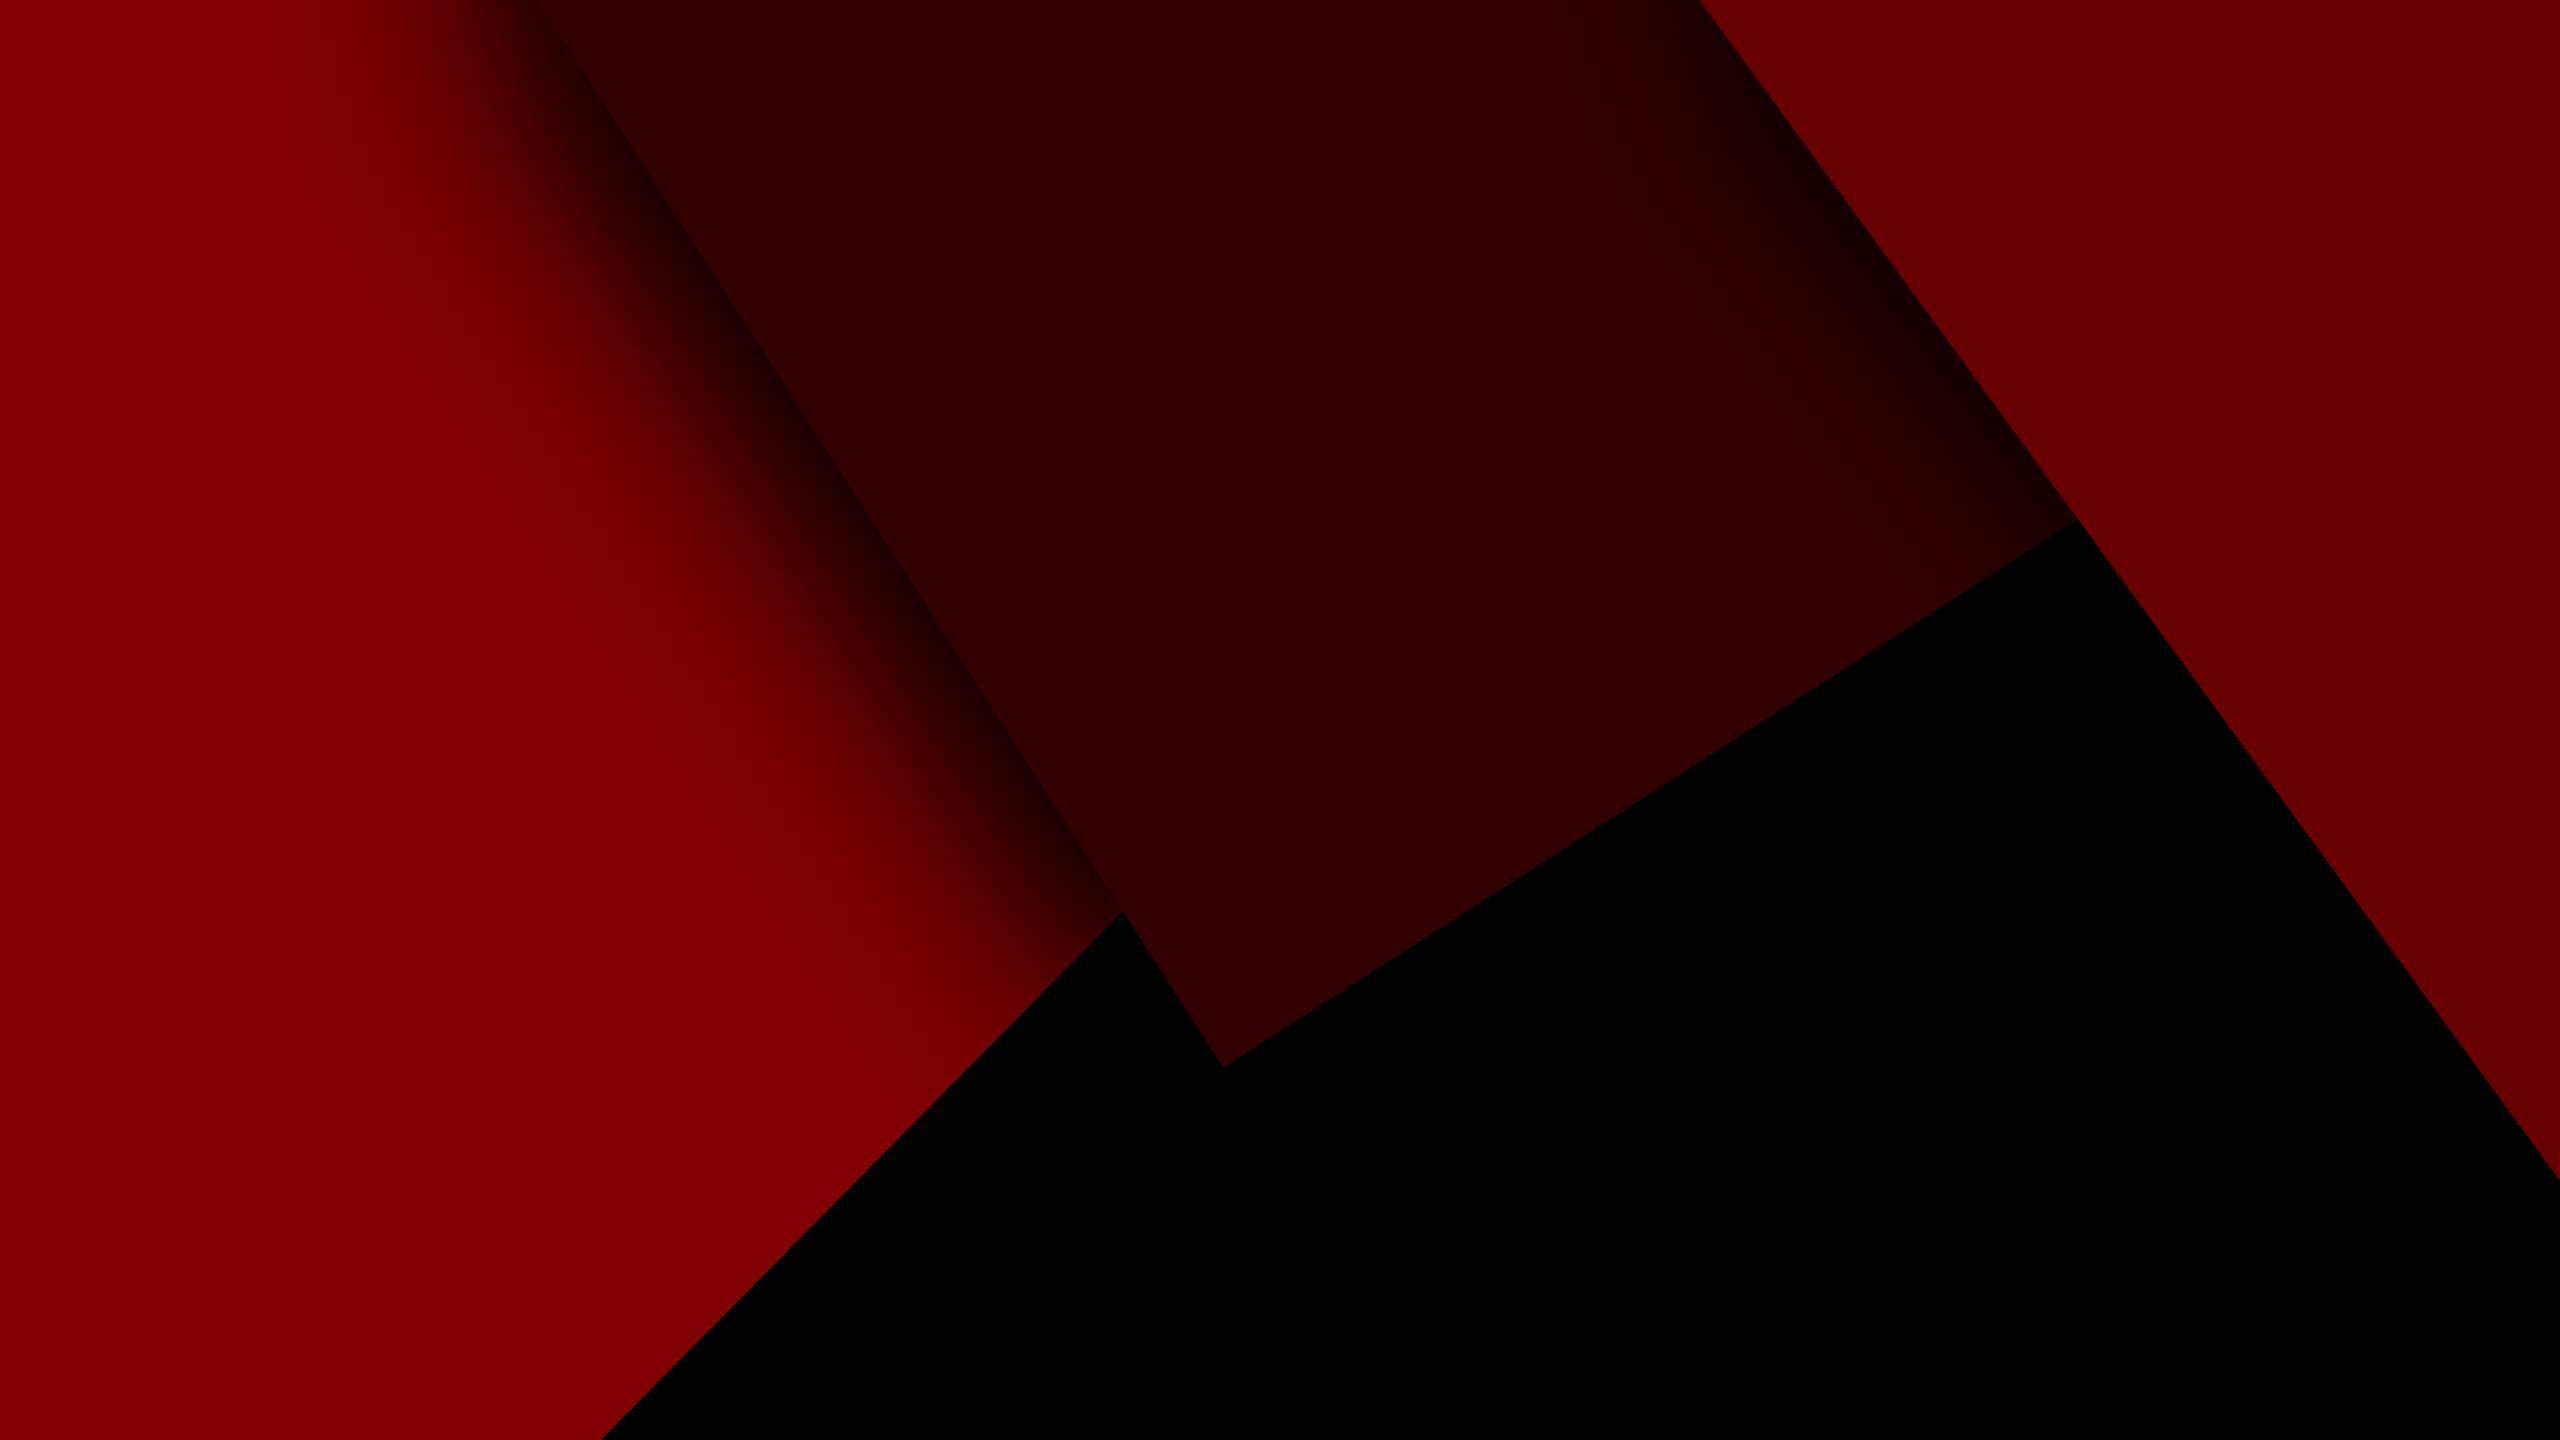 2560x1440 Dark Red Black Abstract 4k 1440p Resolution Hd 4k